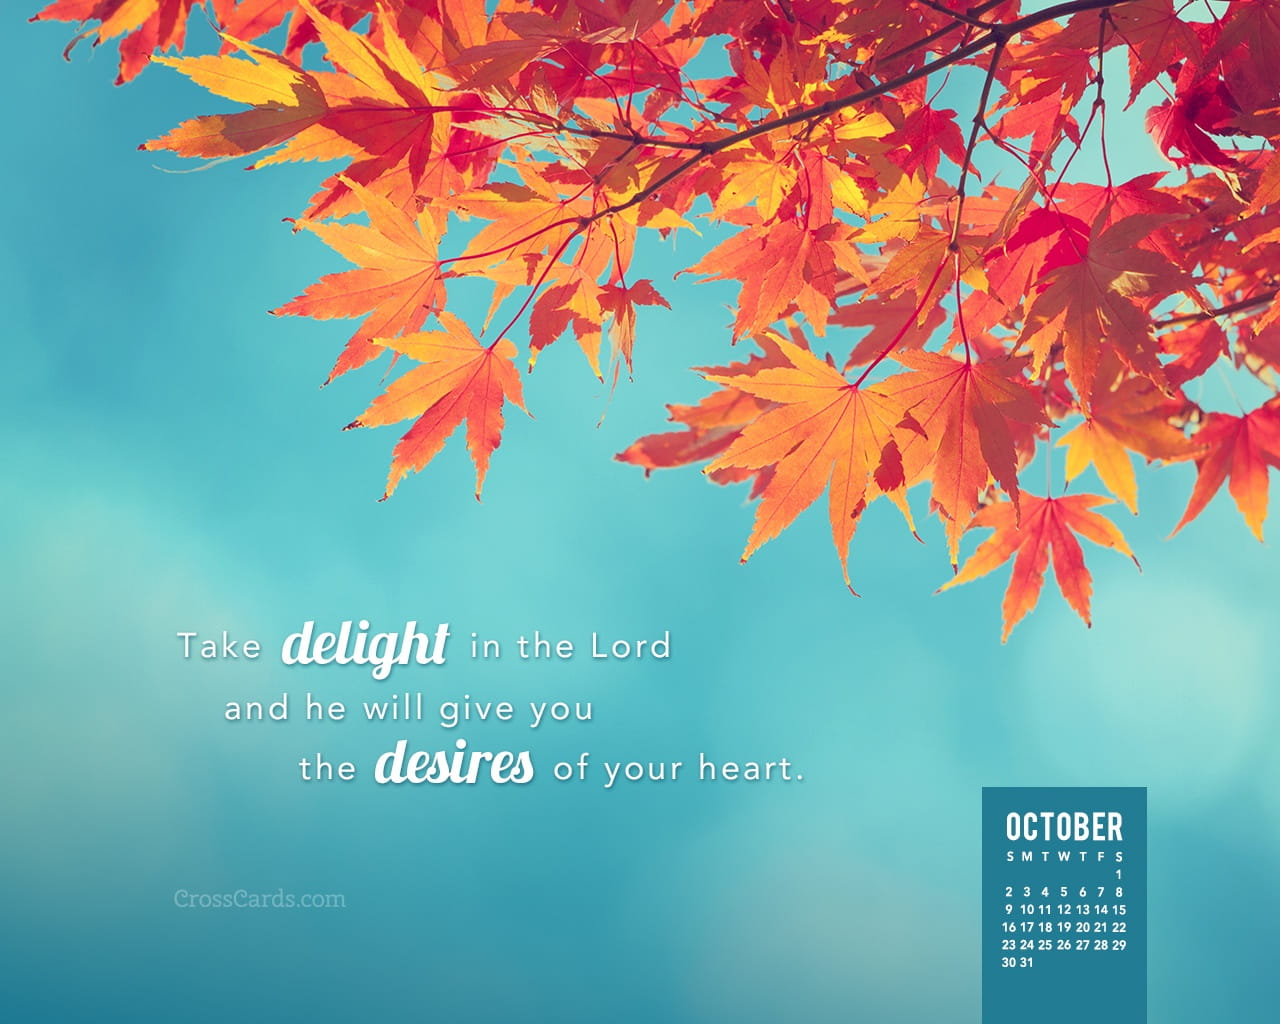 Download Bible Quotes Wallpaper October 2016 Take Delight In The Lord Desktop Calendar